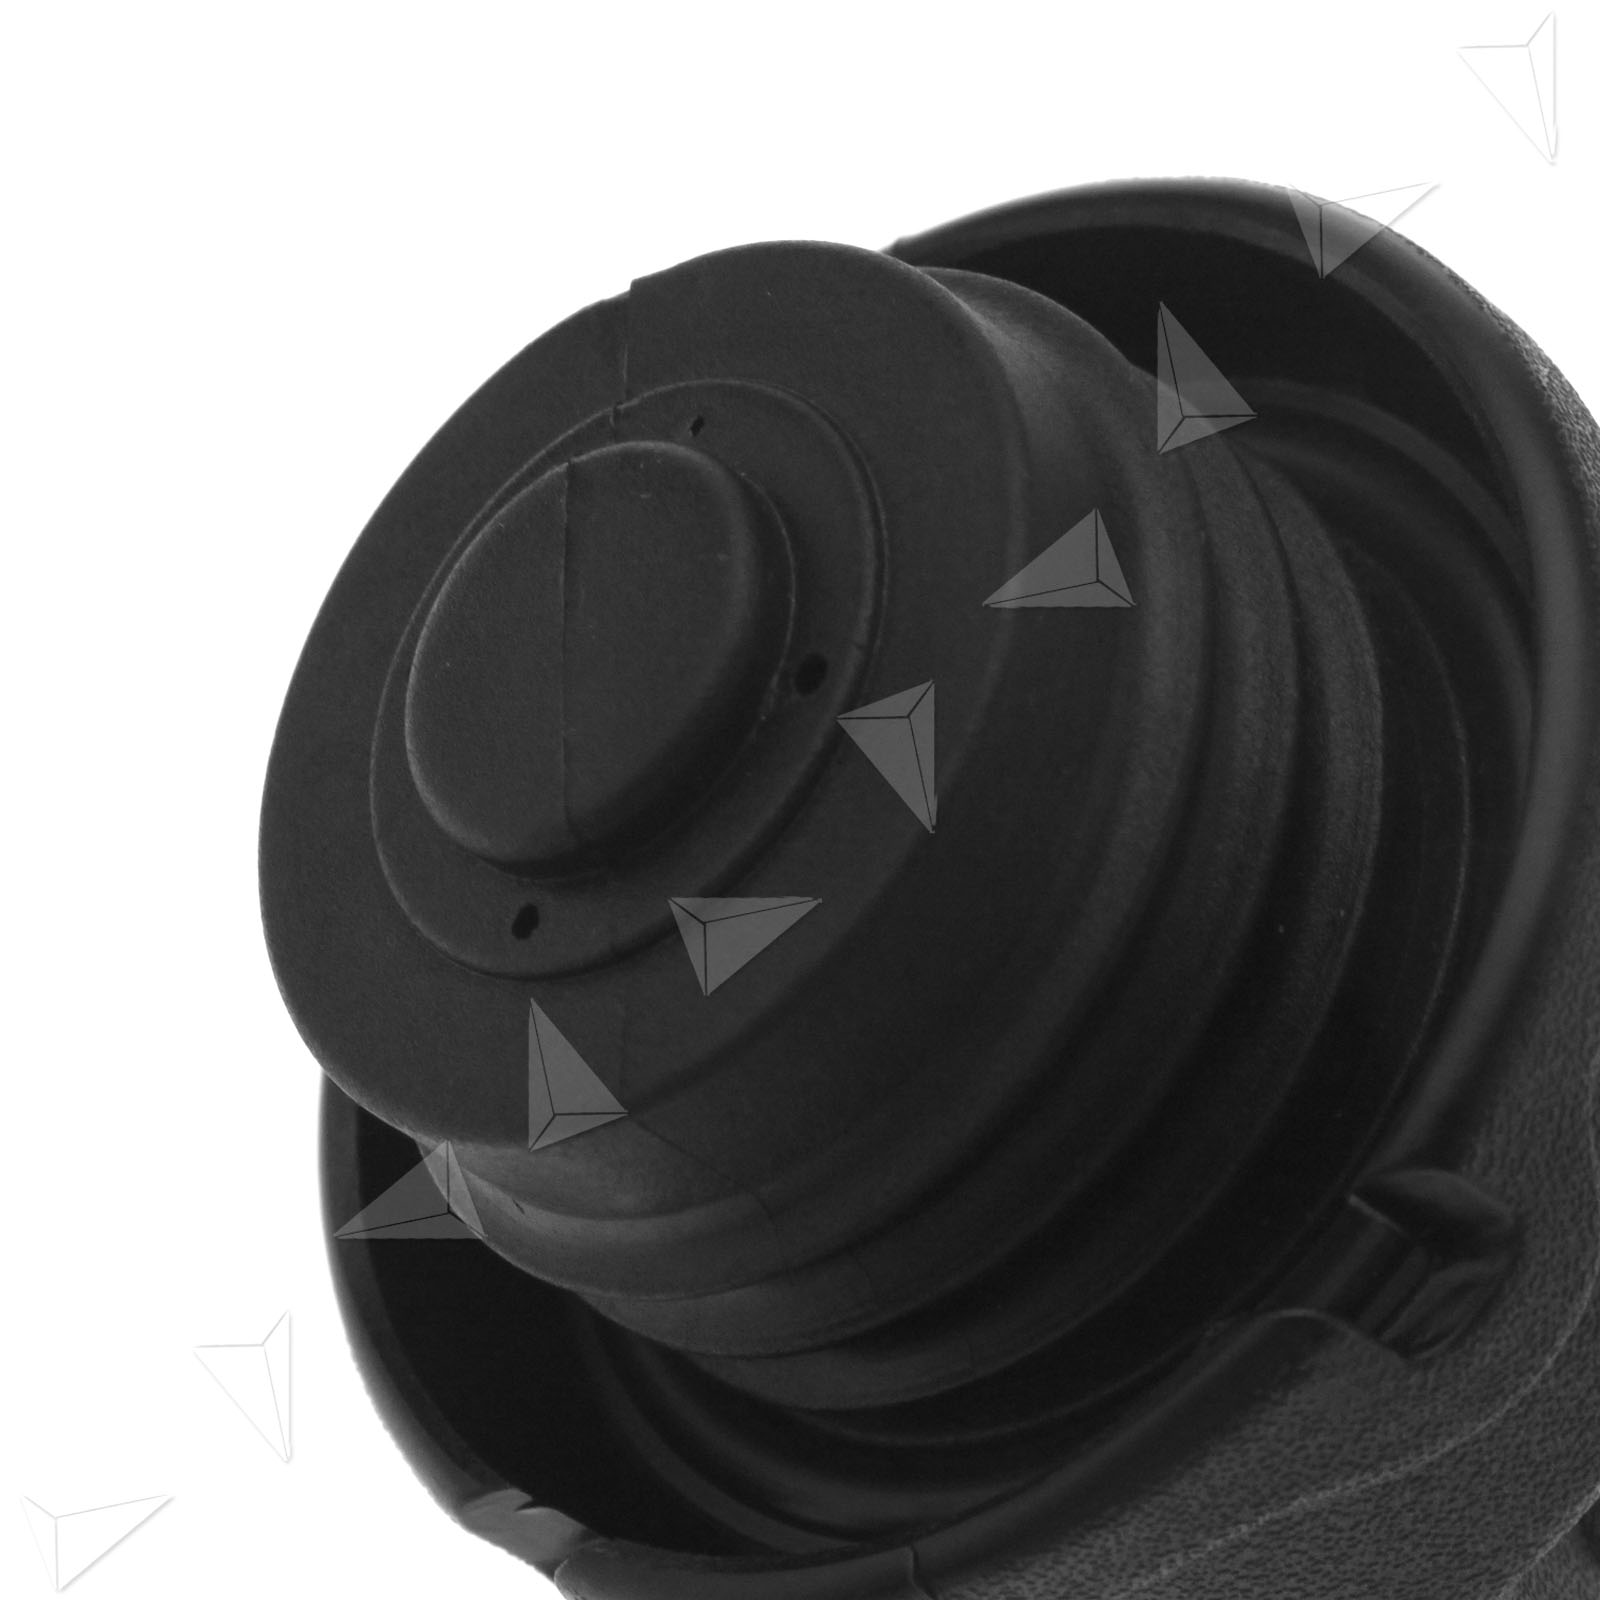 2000 Chevy Tracker Fuel Tank: Fuel Tank Filler Cap With Keys For Vauxhall Astra G Astra